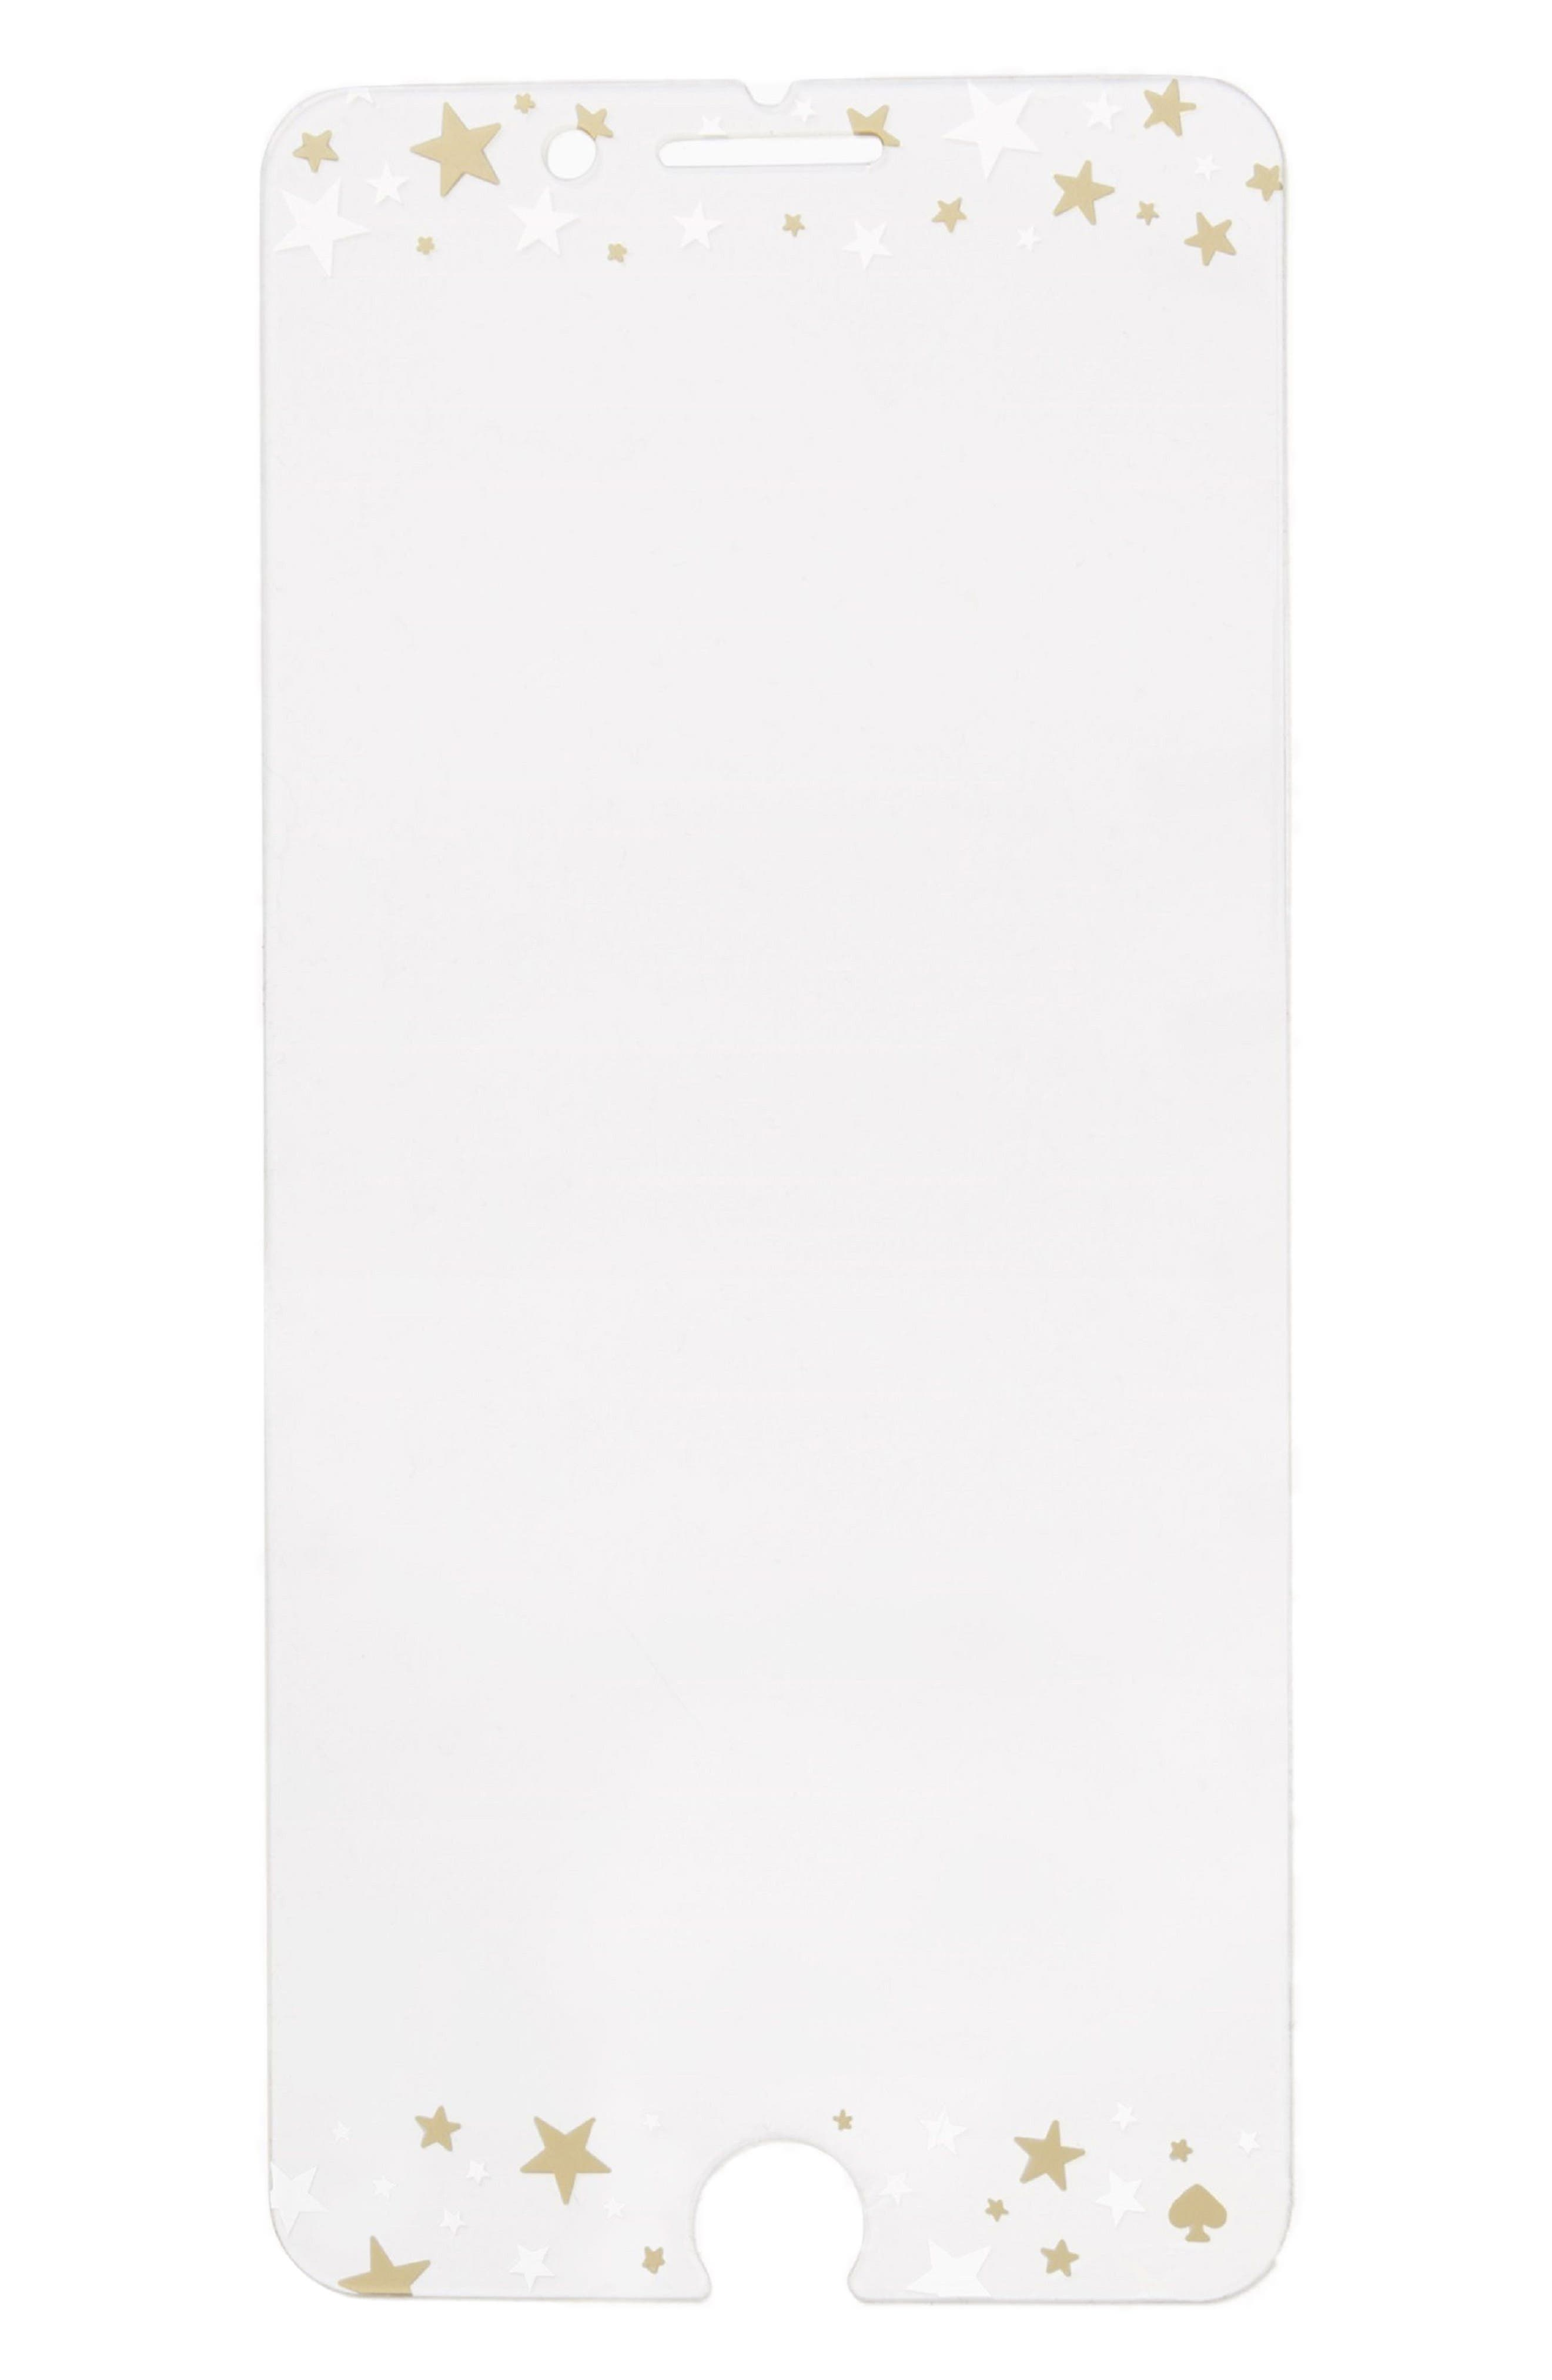 Main Image - kate spade new york star screen cover for iPhone 7/8 & 7/8 Plus